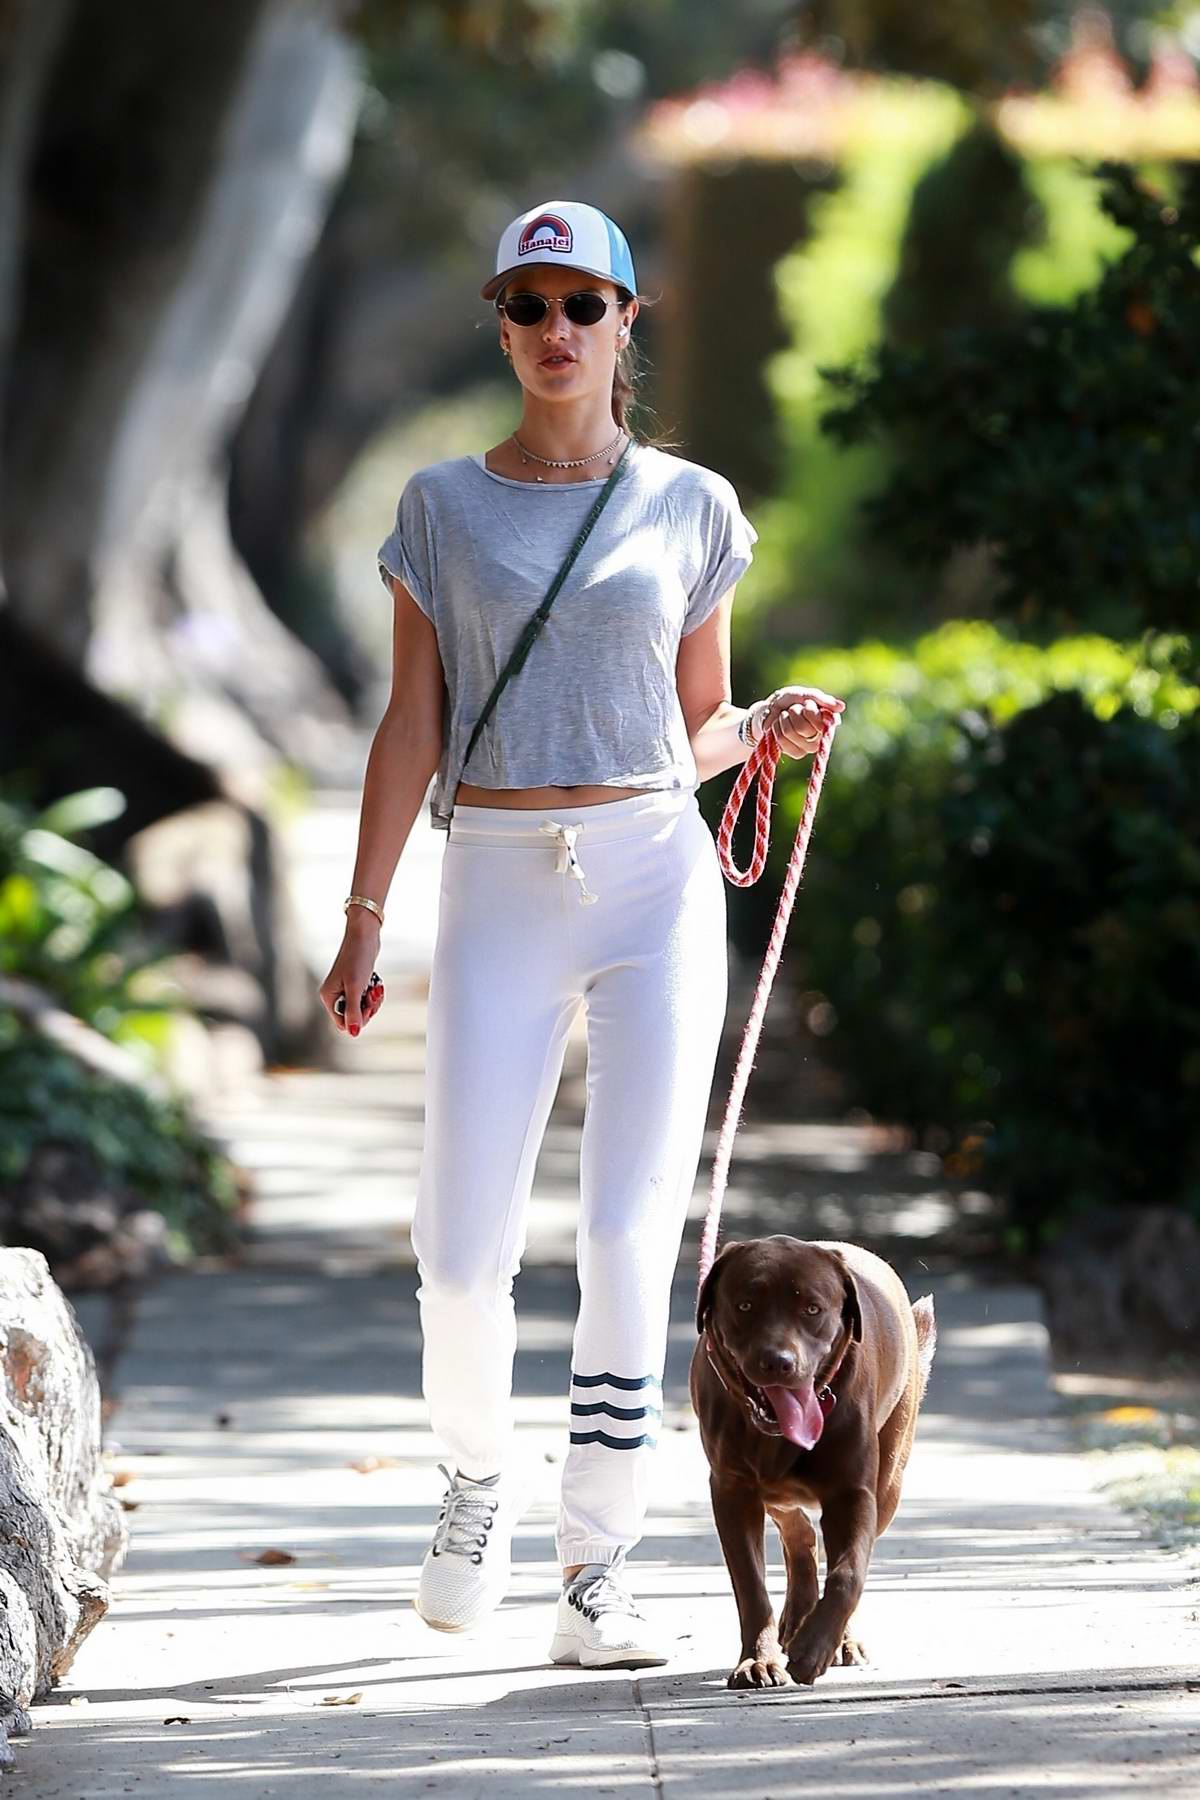 Alessandra Ambrosio enjoys some fresh air while taking her dog for a walk in Santa Monica, California